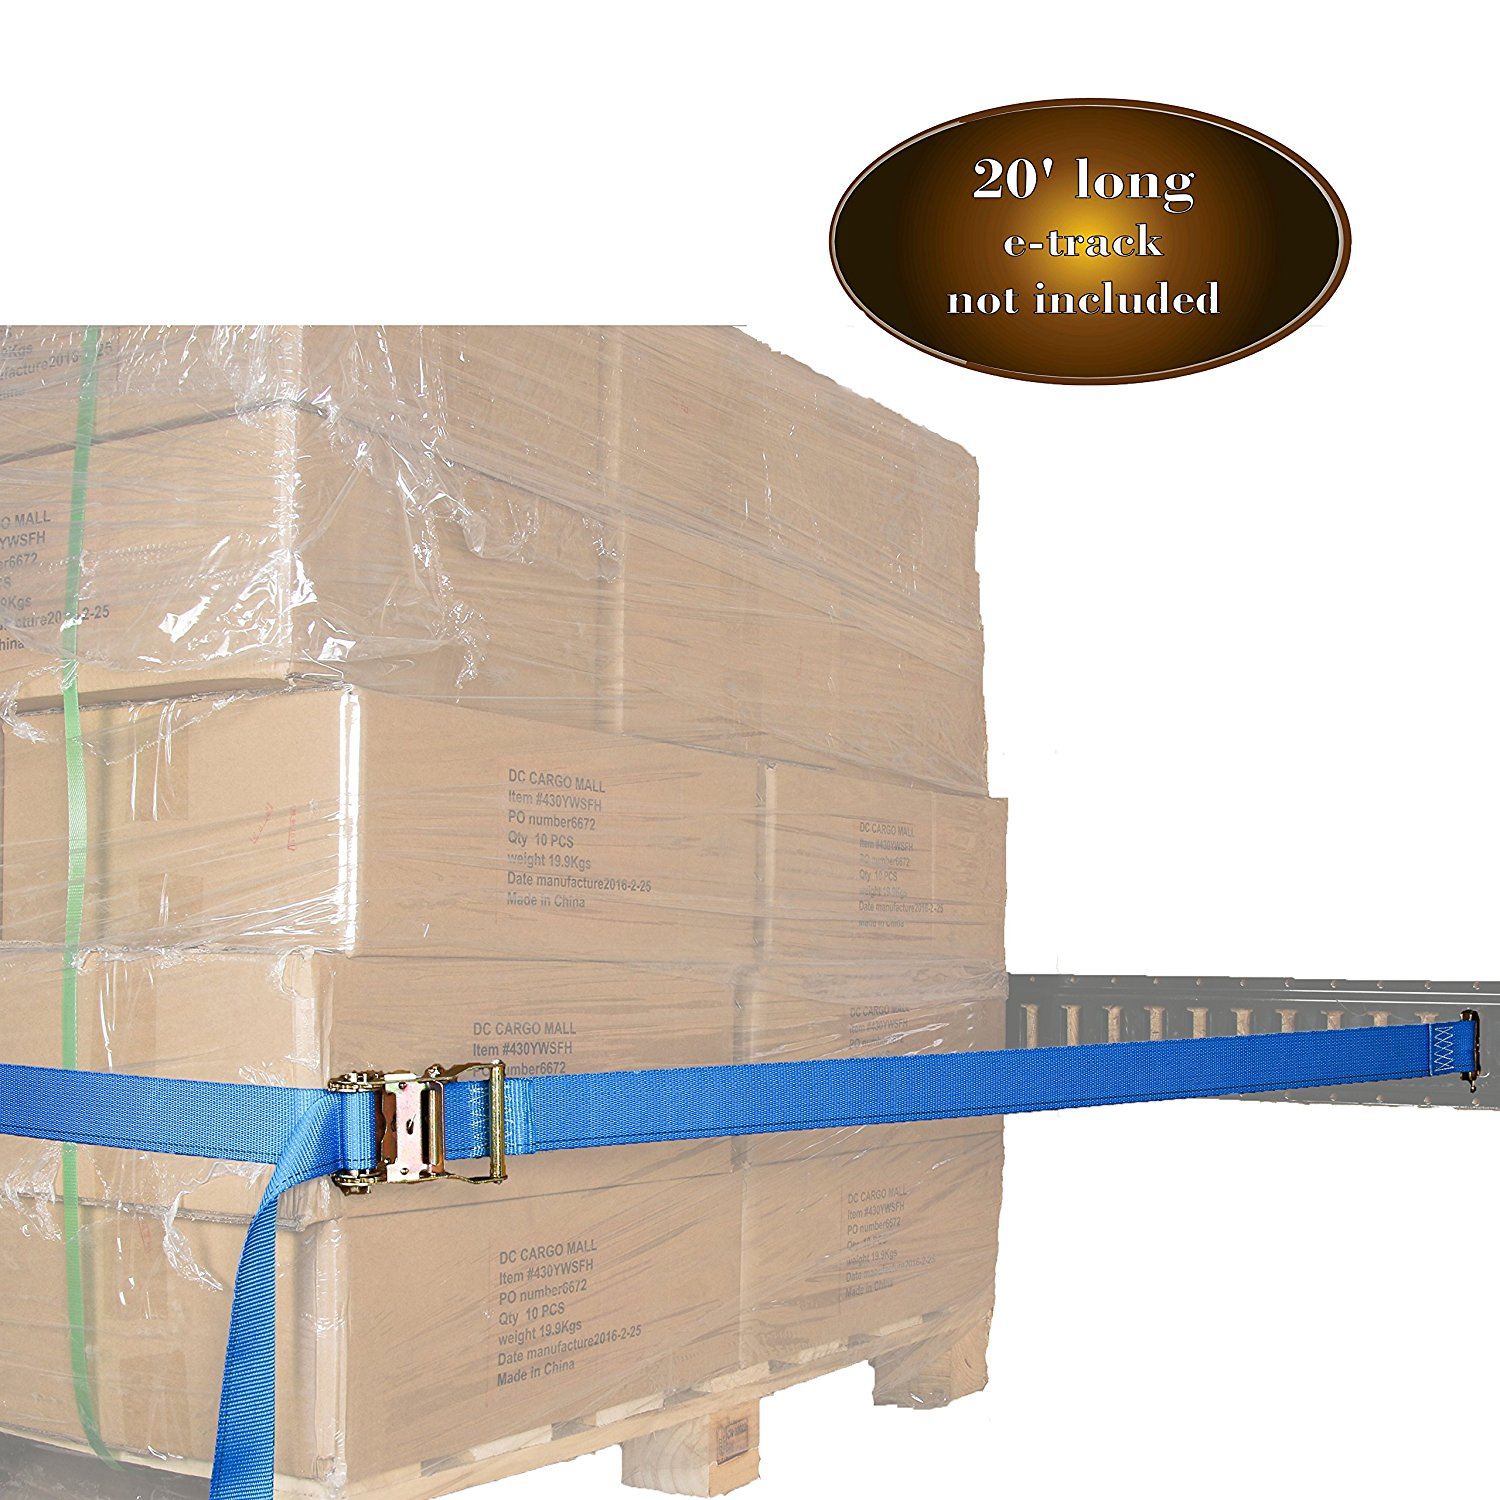 """2"""" x 20' E Track Ratcheting Strap Heavy Duty Cargo TieDown, Durable Blue Polyester Tie-Down... by DC CARGO MALL"""